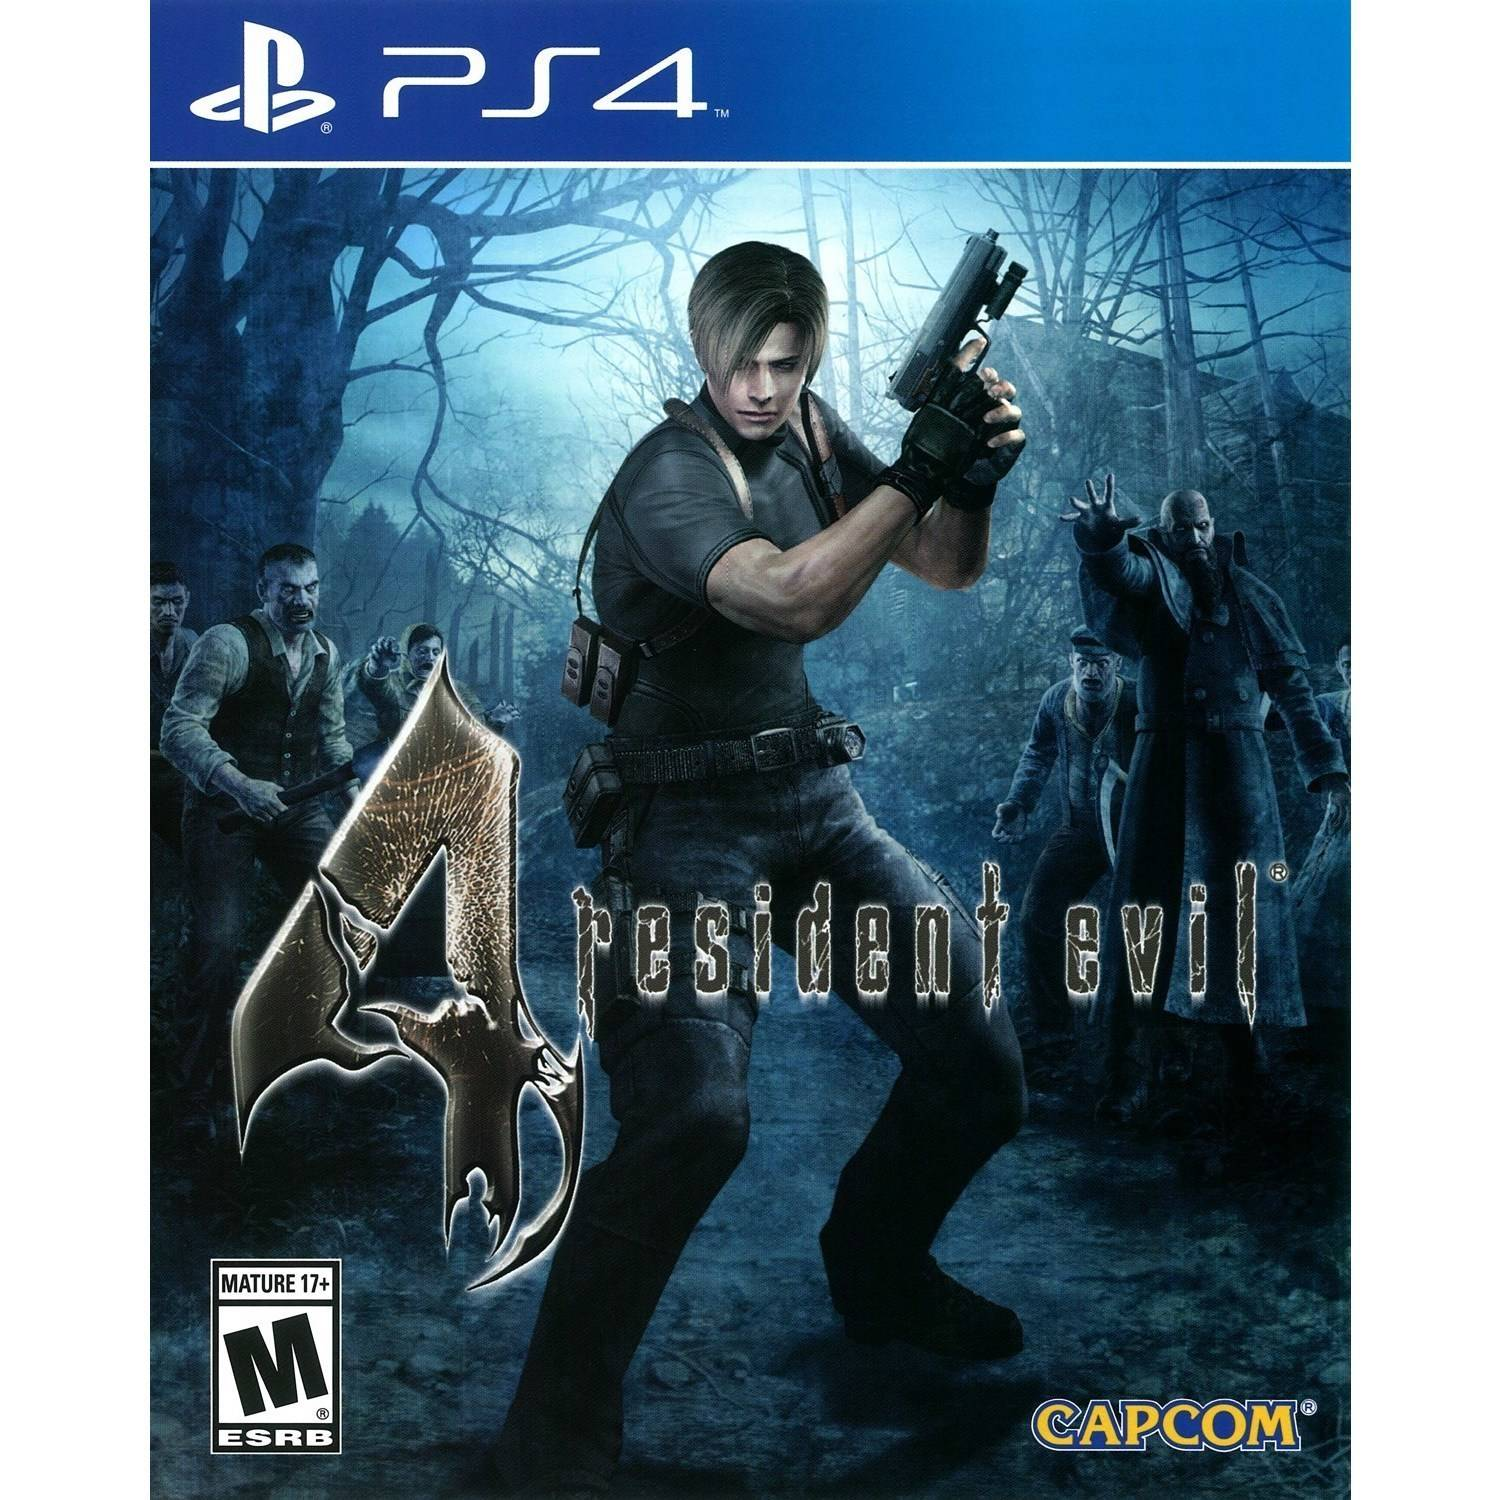 Resident Evil 4 HD - Pre-Owned (PS4) - Walmart.com